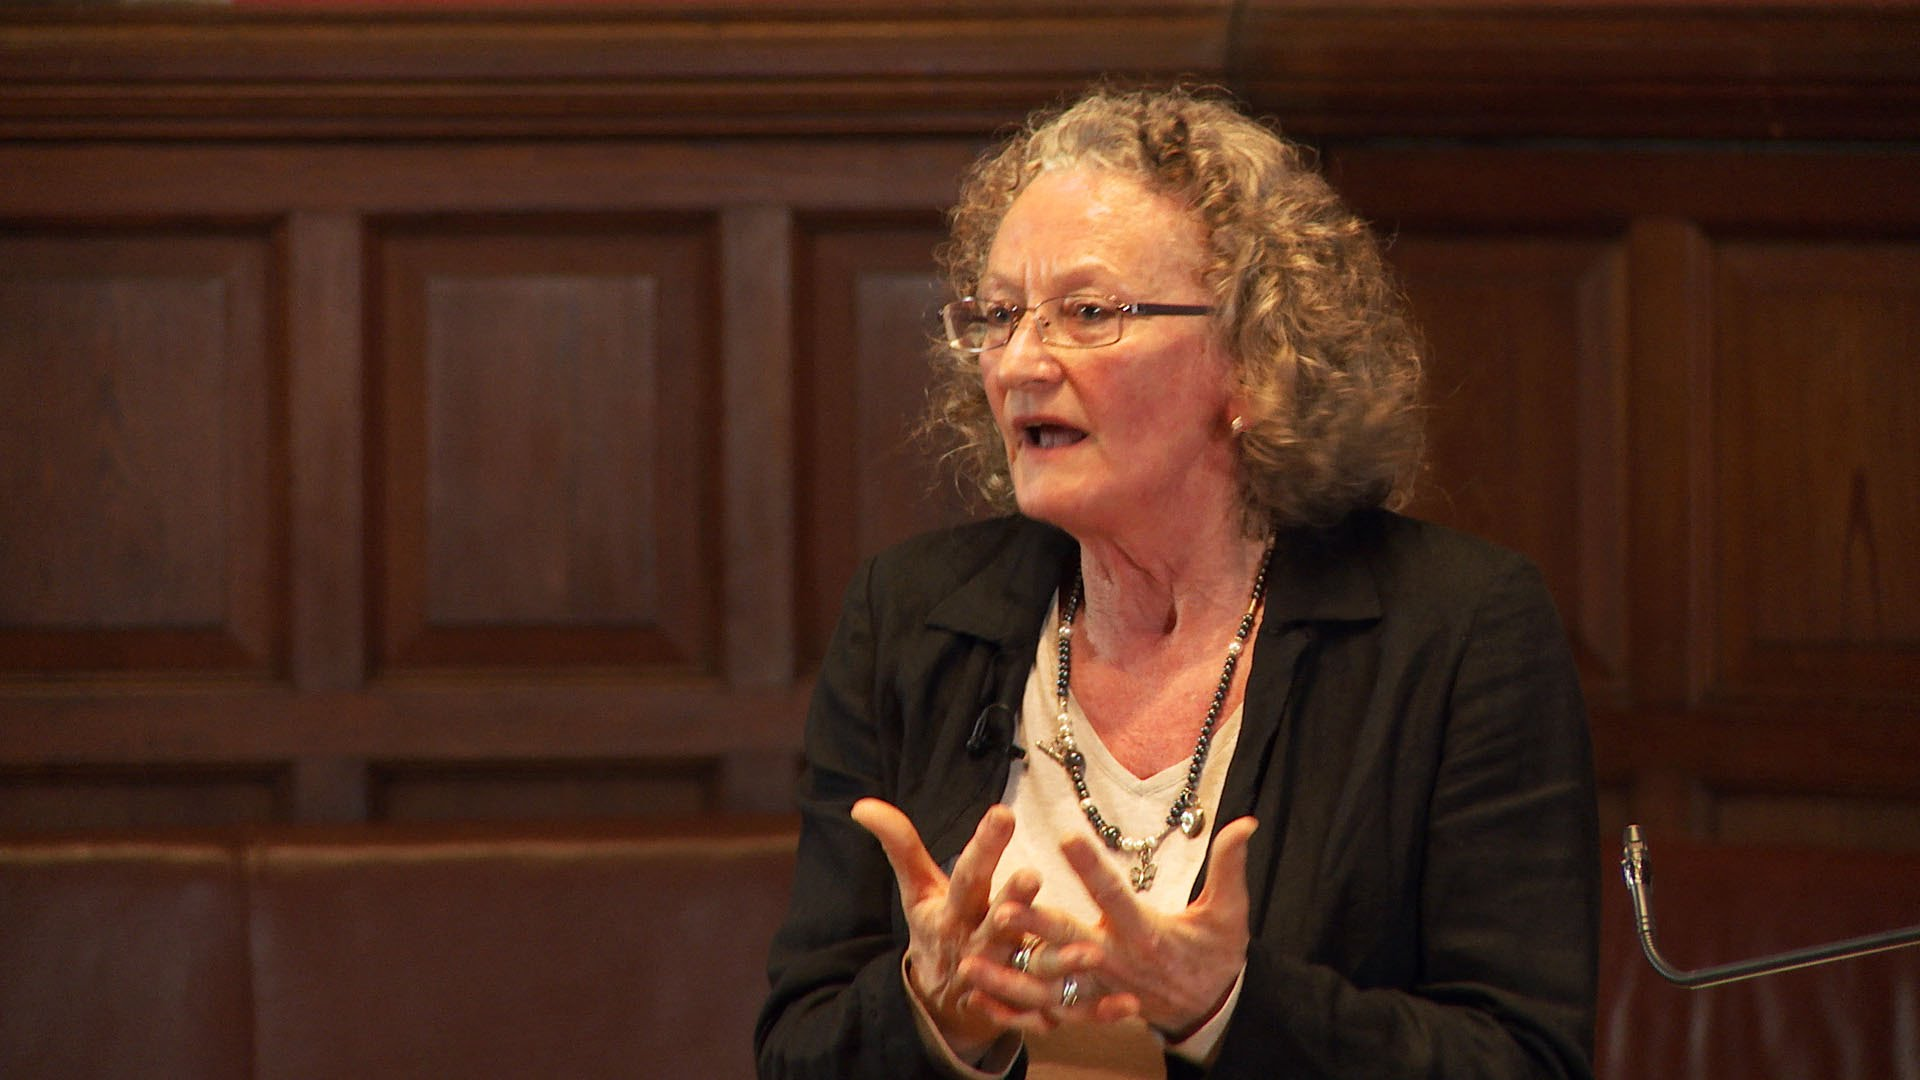 Jenny Jones demands answers: who in government knew about spycops relationships?